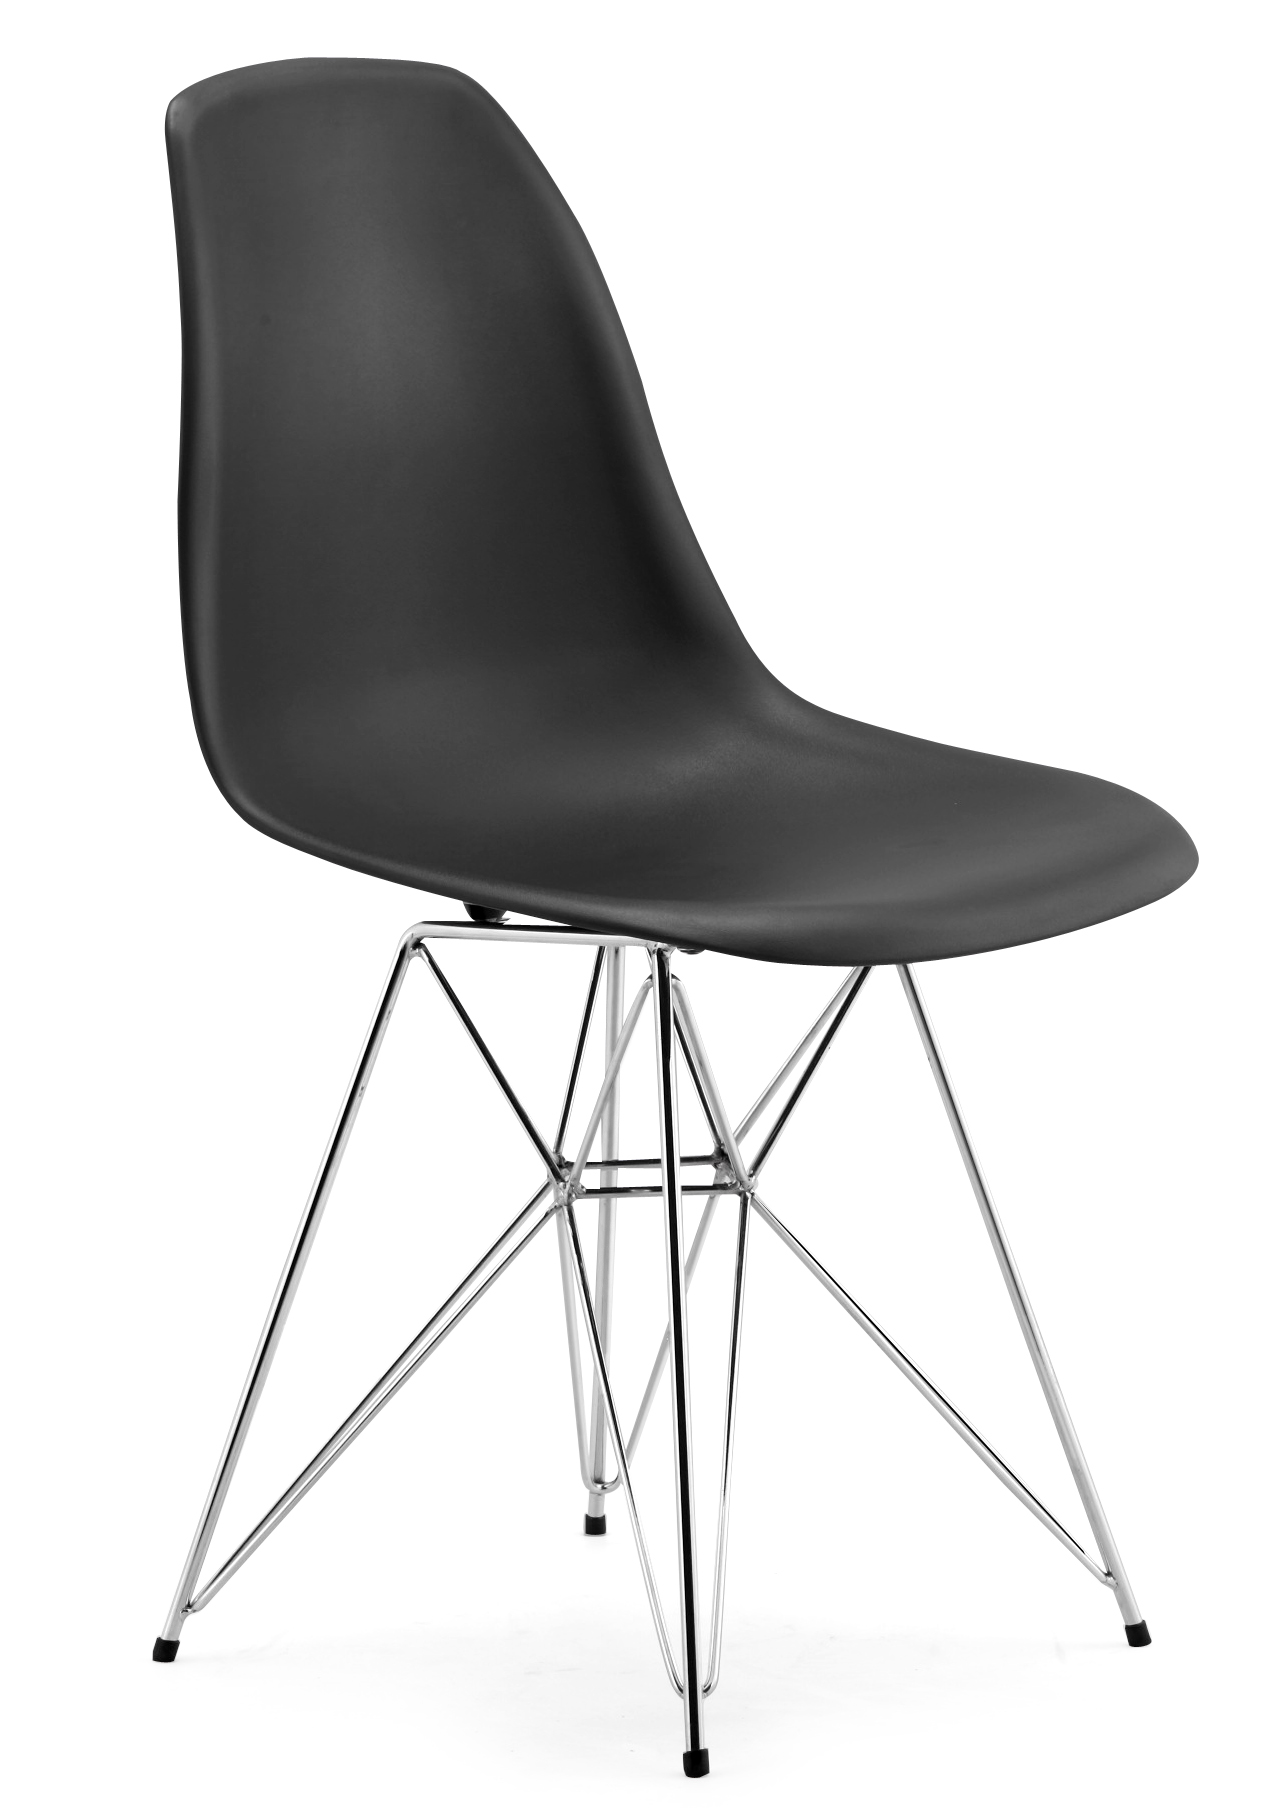 black kitchen chairs black kitchen chairs zuo modern spire dining chair dining chair 0 0